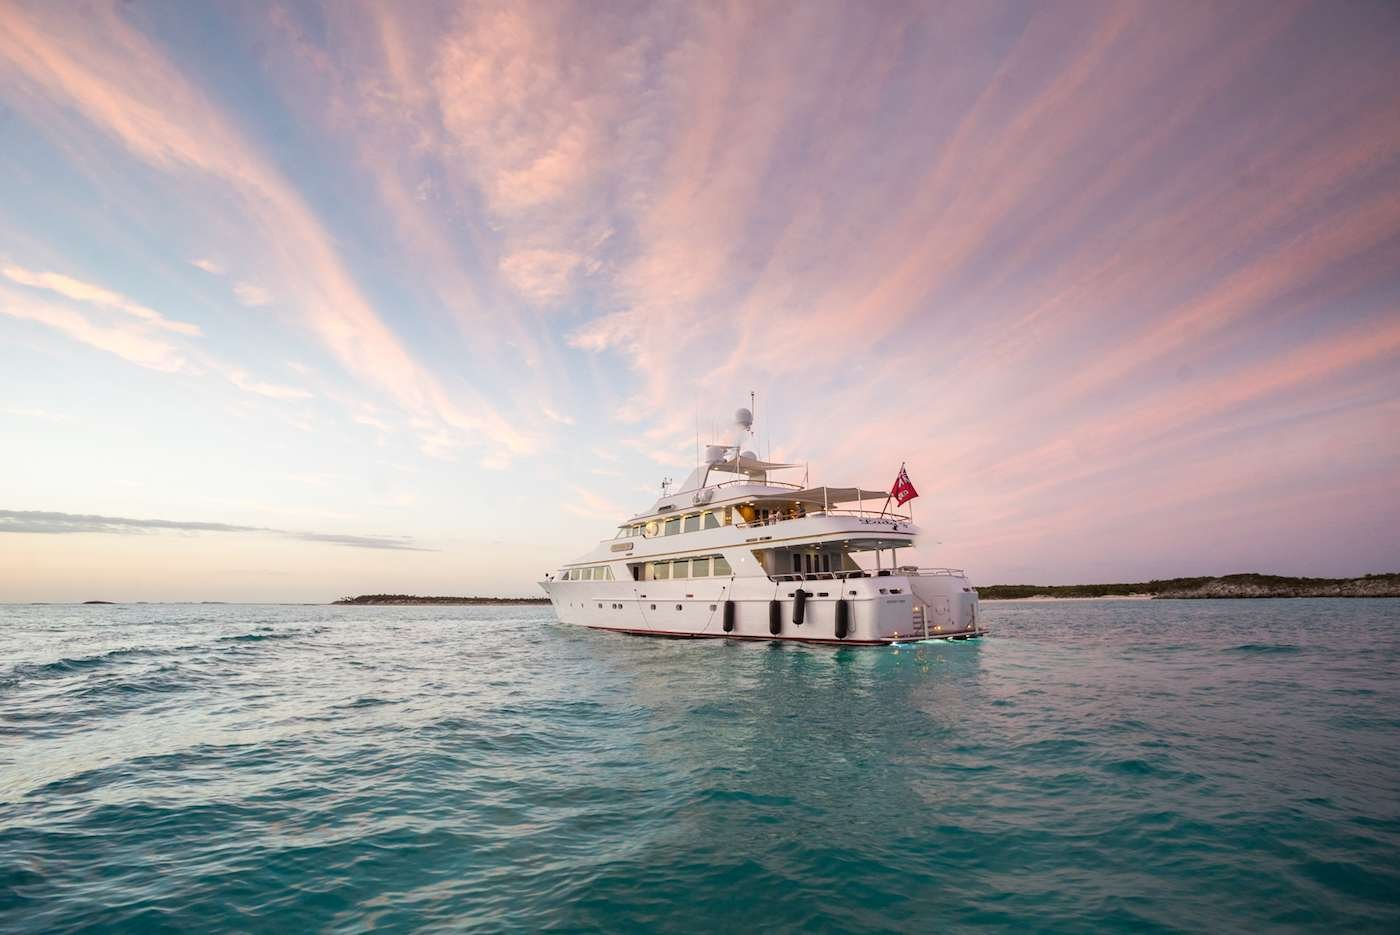 Motor Yacht 'LADY J' Aft View, 12 PAX, 9 Crew, 142.00 Ft, 43.00 Meters, Built 1997, Palmer Johnson, Refit Year 2017